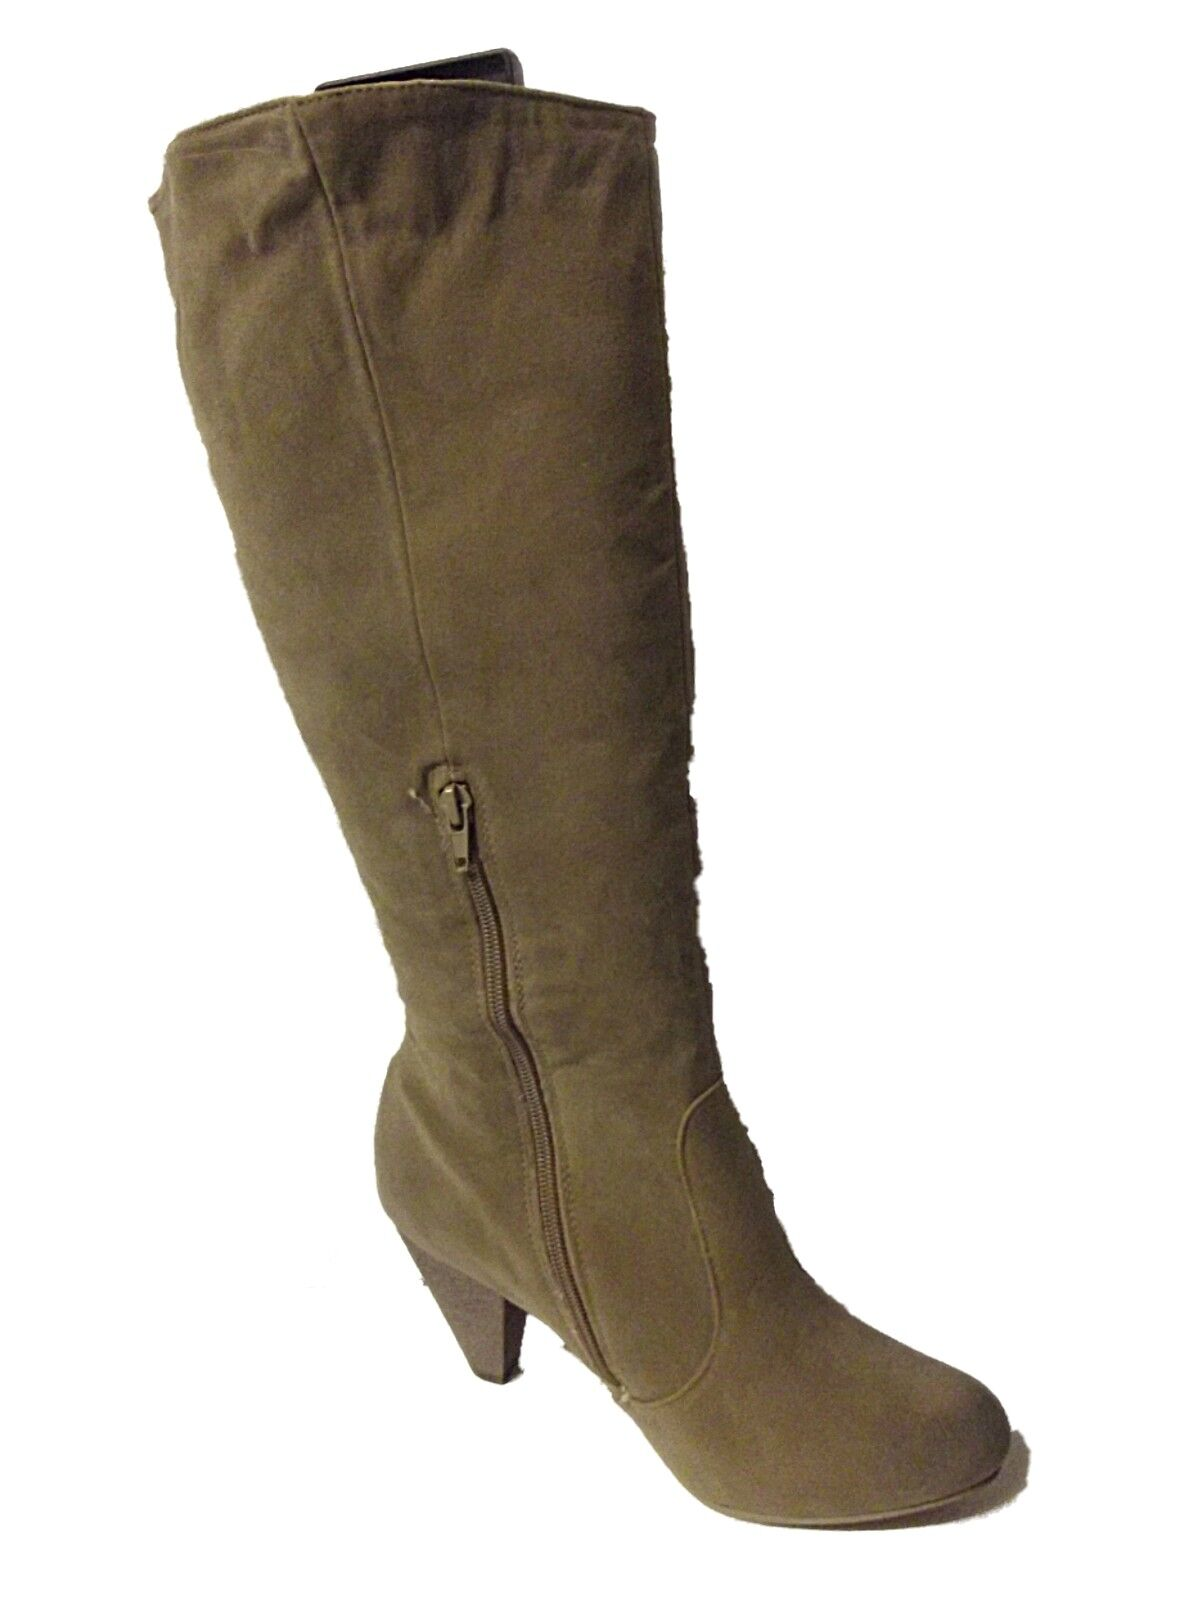 NEW LADIES EX STORE BEIGE FAUX SUEDE HEELED KNEE HIGH TALL BOOTS 1 - 8 WIDE